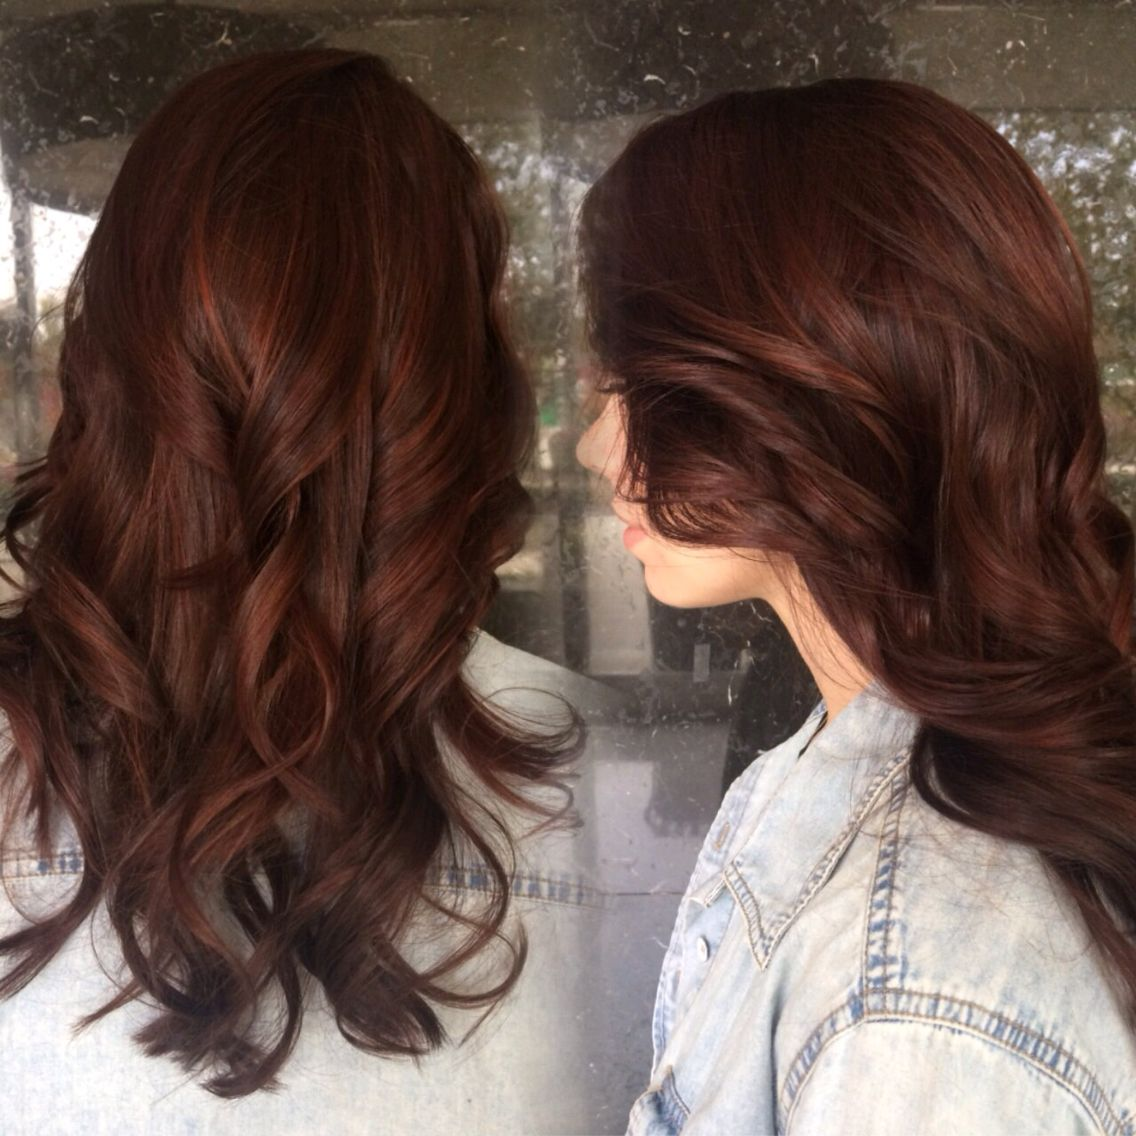 Auburn brunette with subtle red highlights peaking through